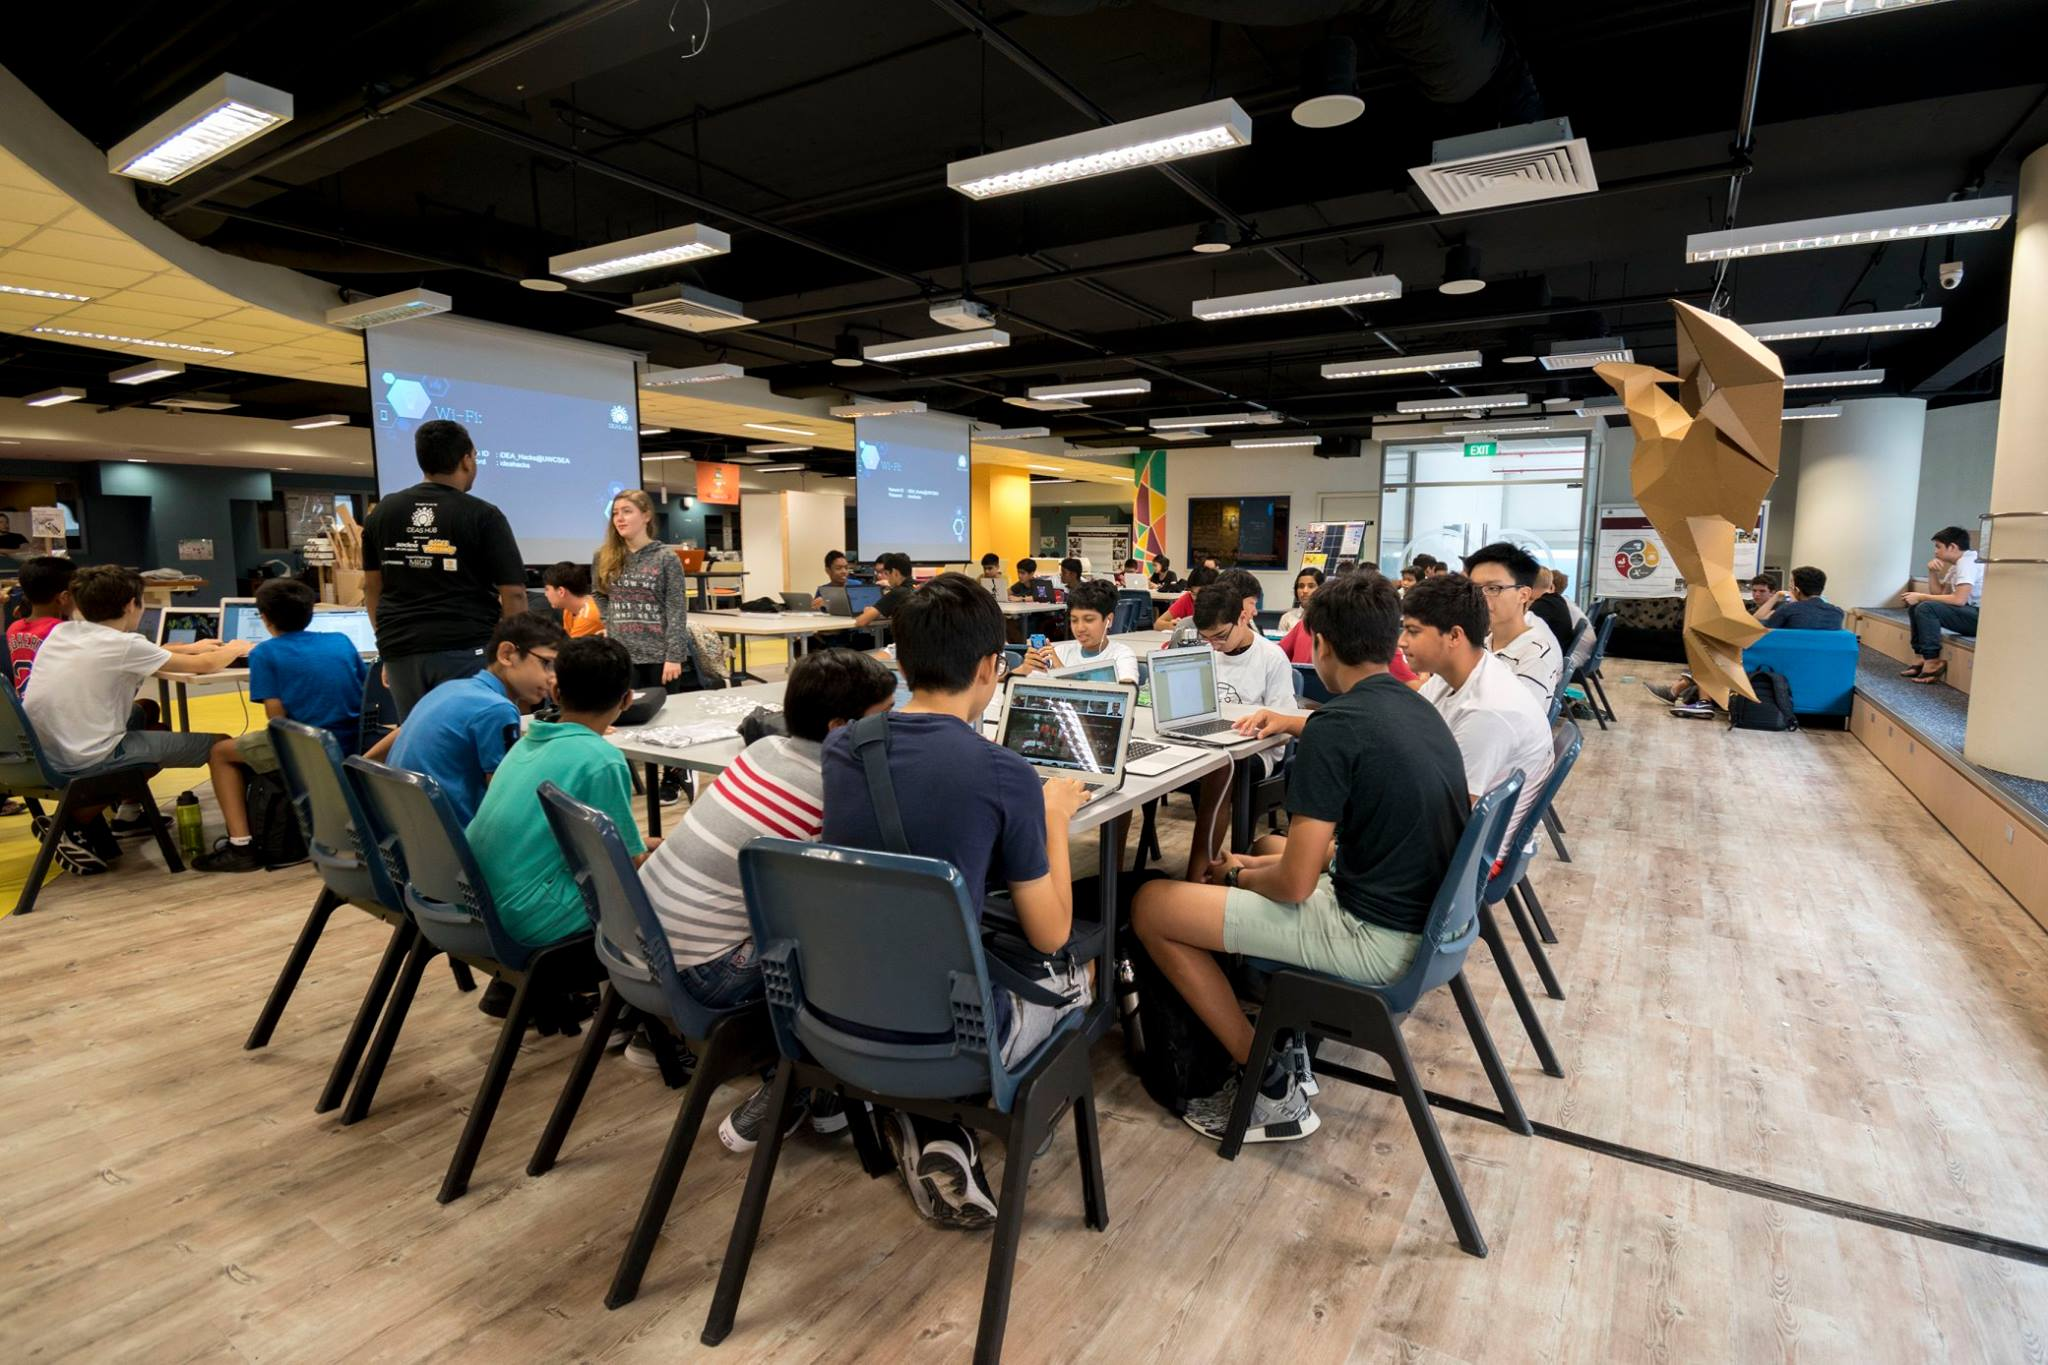 IDEA Hacks is in its 2nd year running with the theme of Gamification for Good. Taking place on the 11th and 12th of November, we saw teams from all around Singapore create games and gamified experiences that solved a problem.